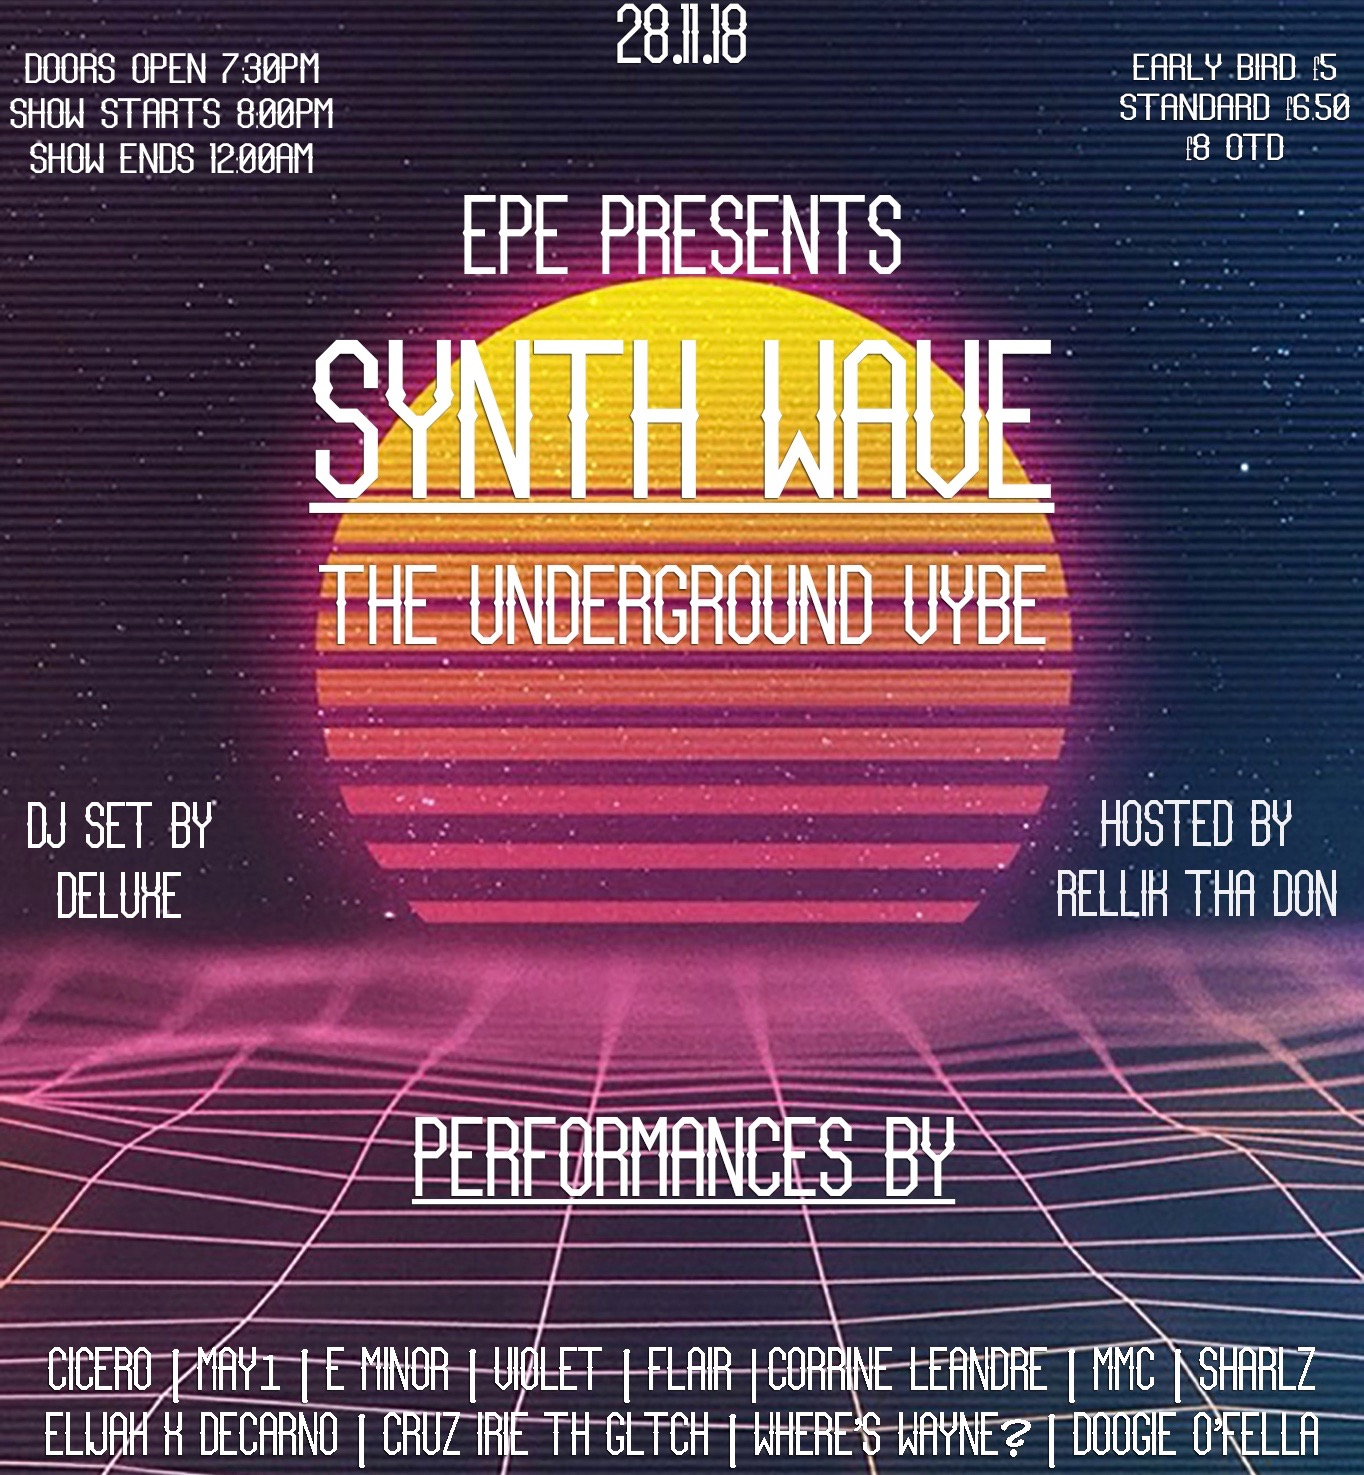 EPE presents SynthWave | The Underground Vybe at The Victoria promotional image